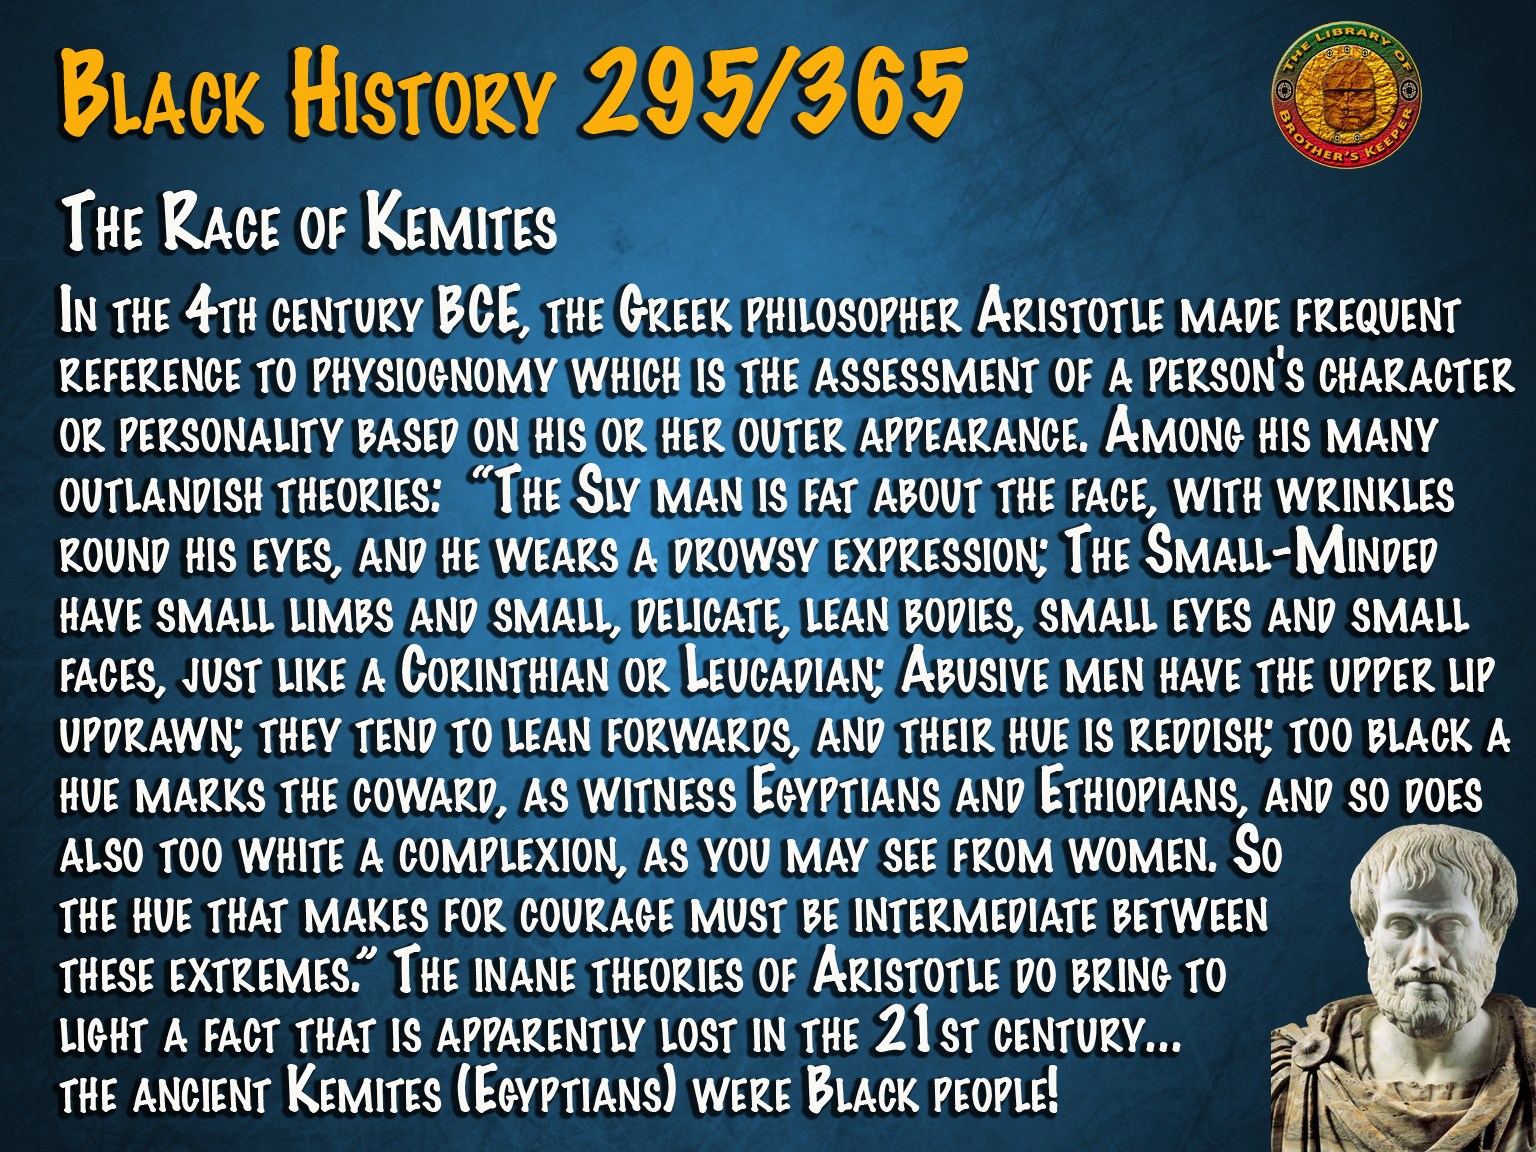 The Race of Kemites